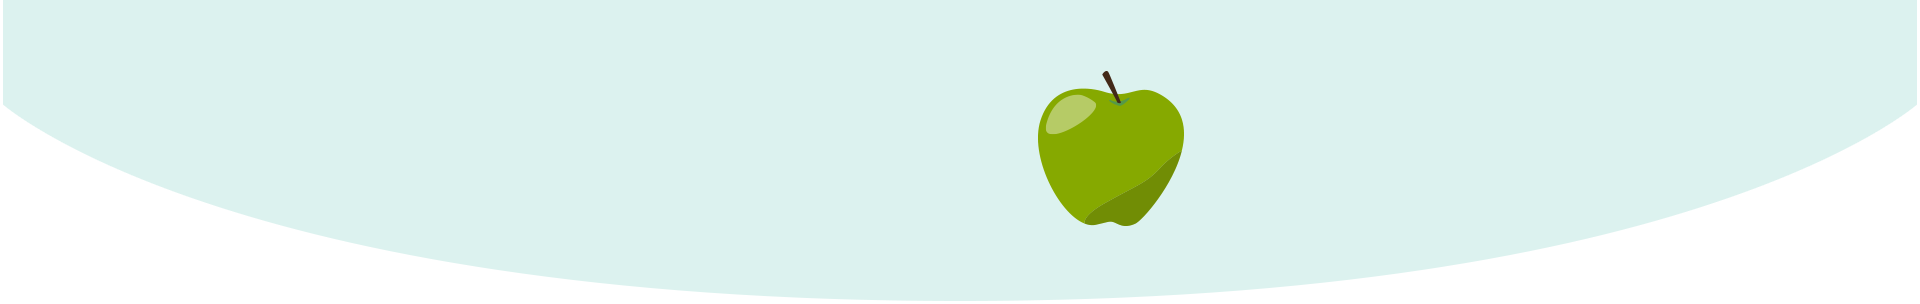 baby size of apple week 16